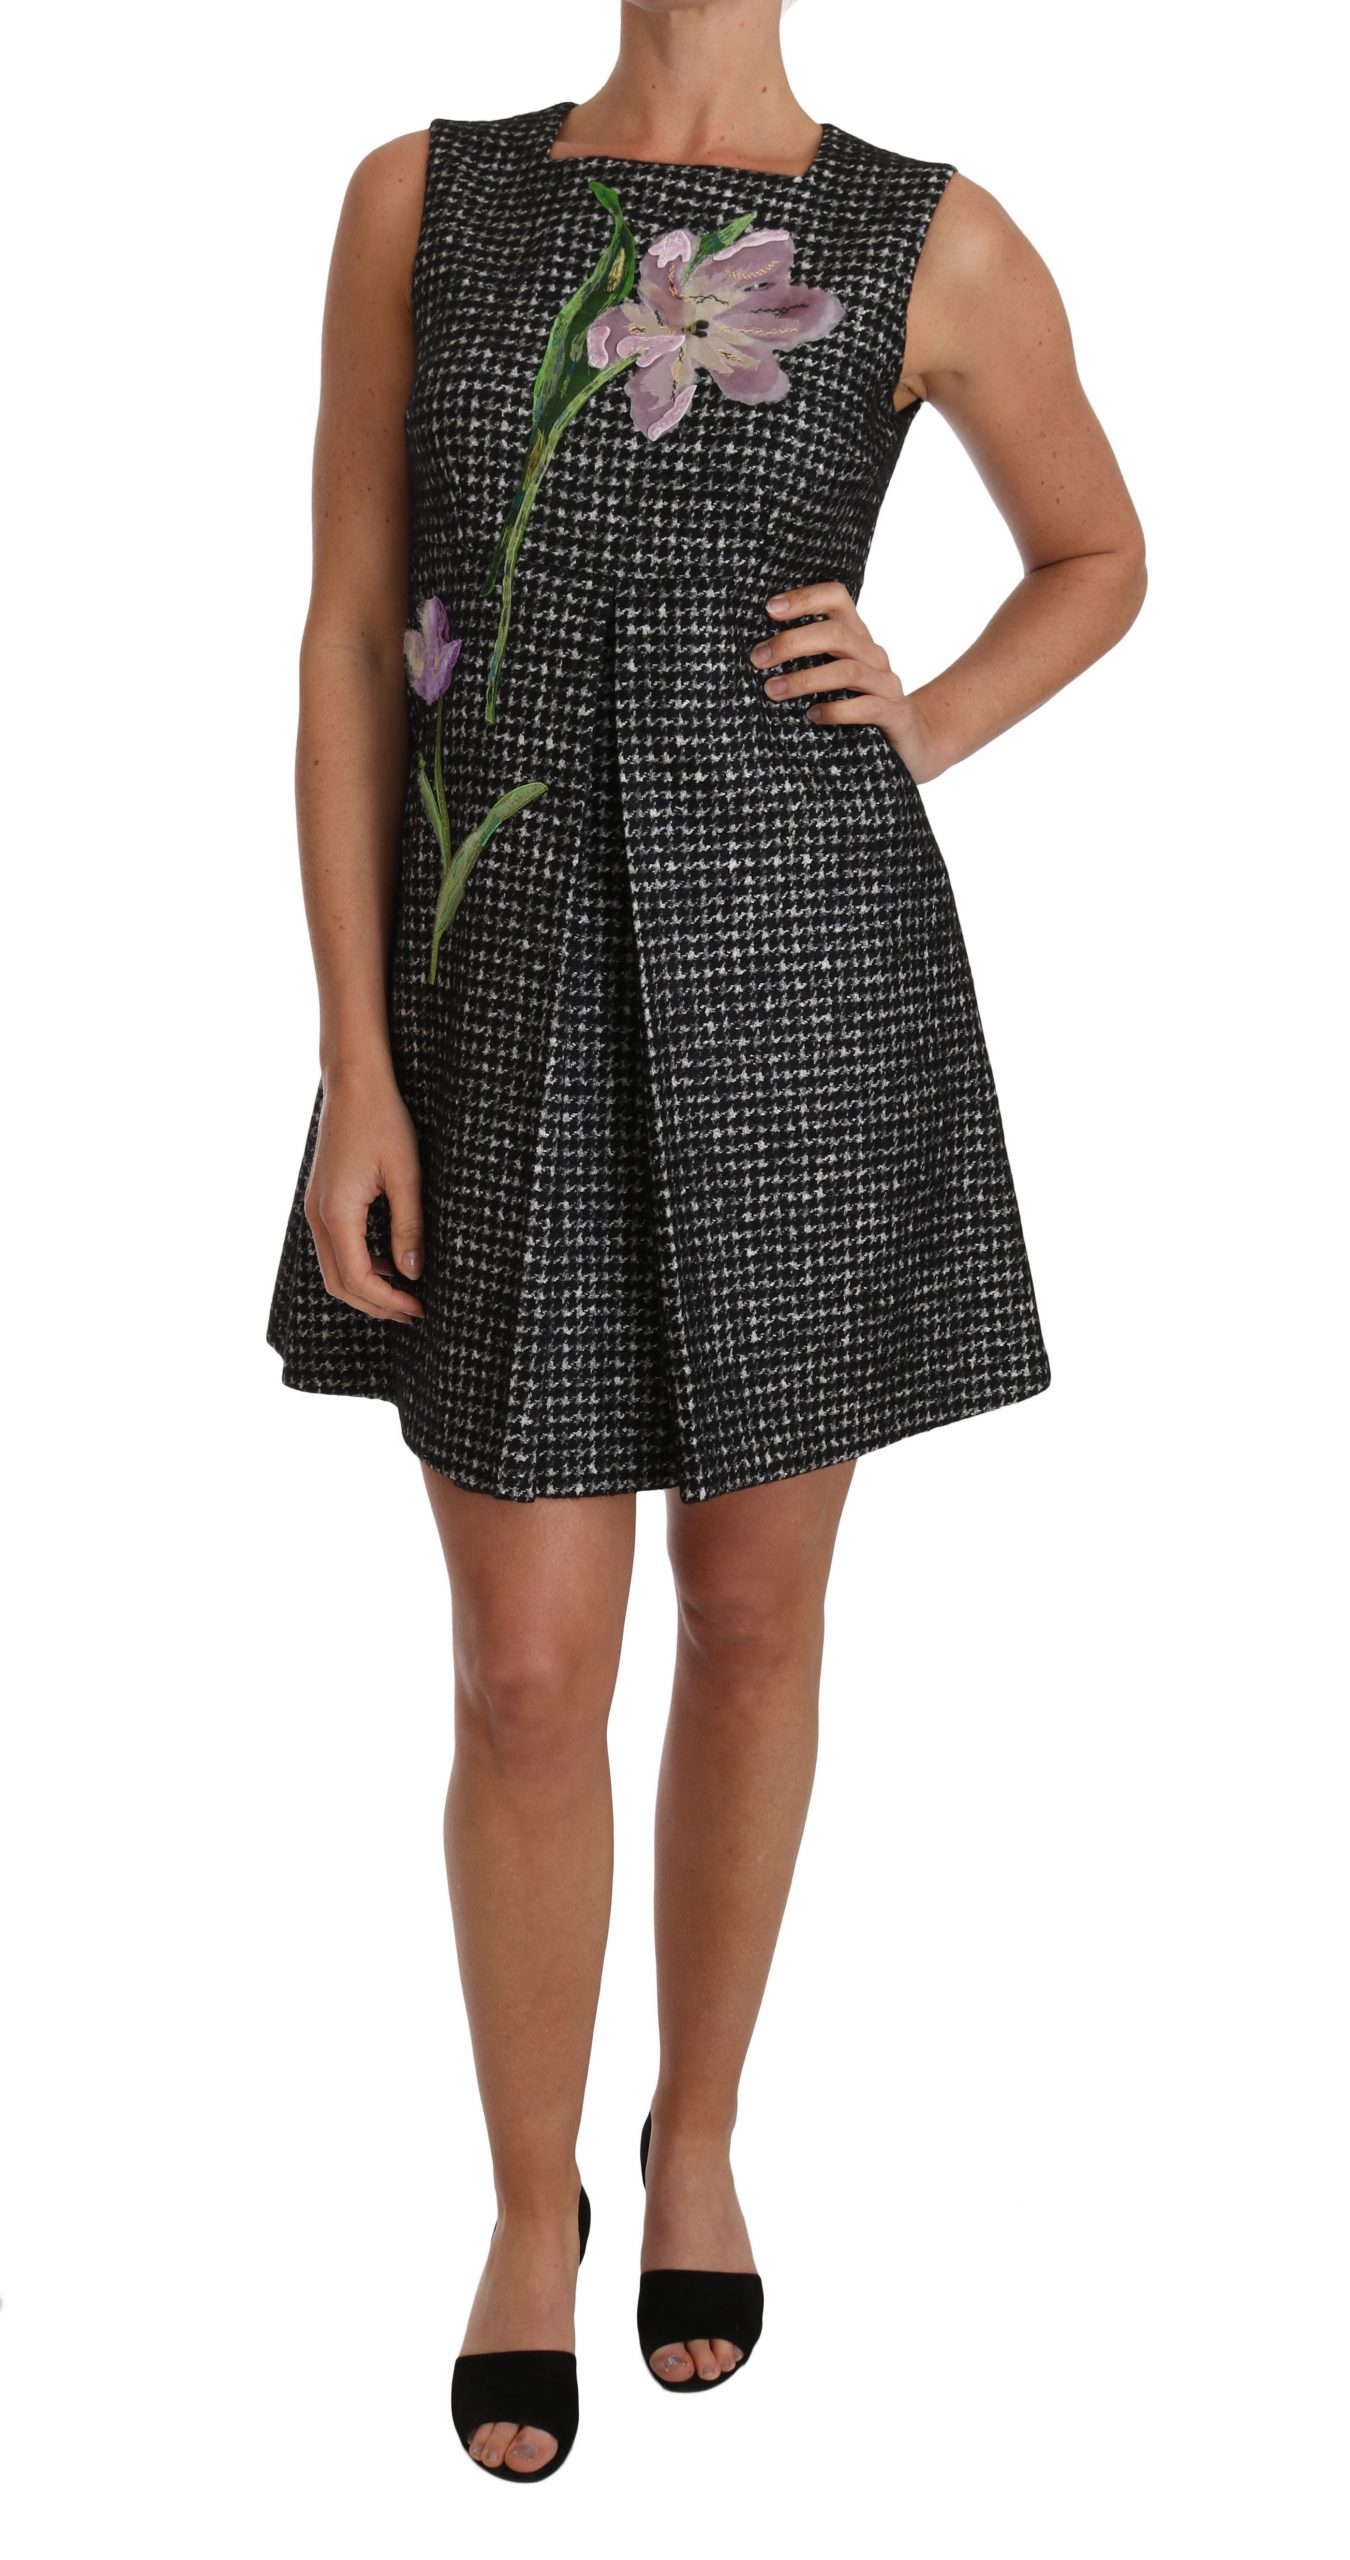 Dolce & Gabbana Women's Tulip Embroidered A-Line Shift Dress Gray DR1491 - IT42|M